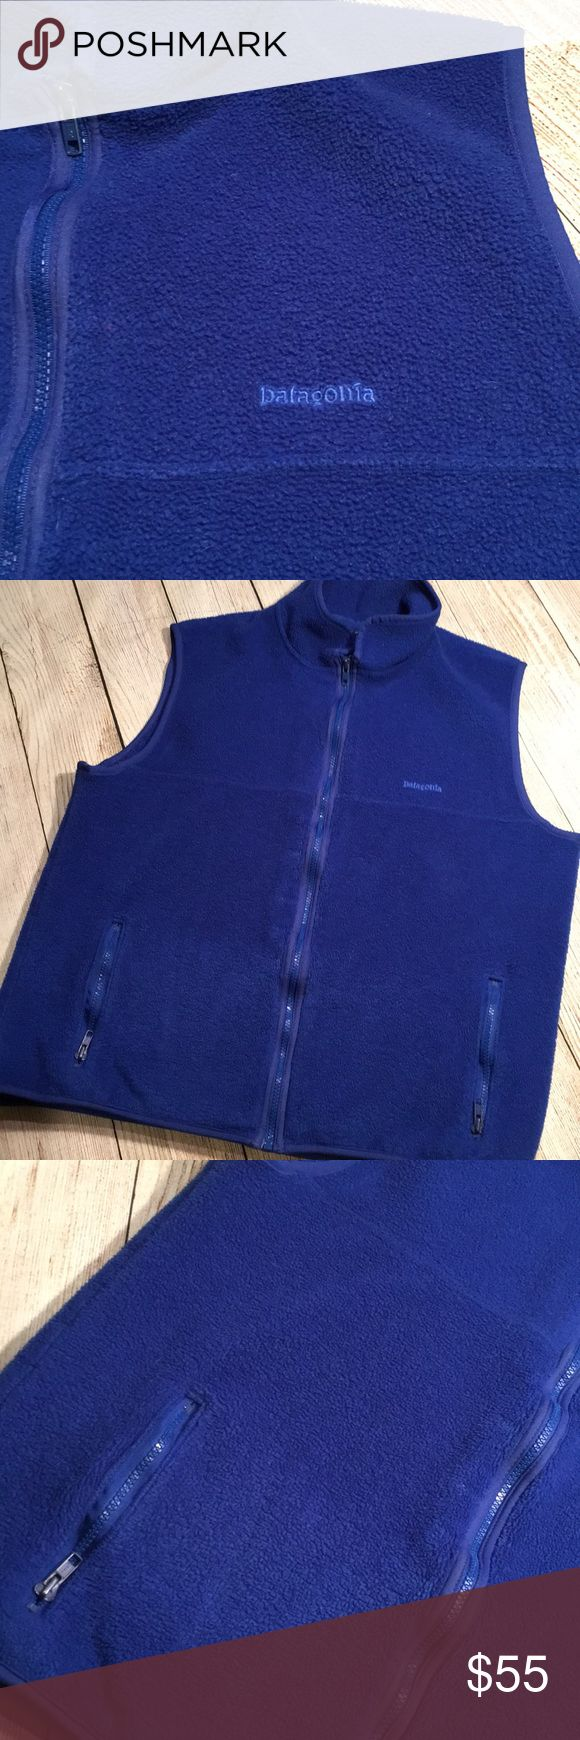 Vintage Patagonia Vest Fleece vintage (around 2000) blue Patagonia vest in great gently warn condition. No holes or stains. Men's XL.  Please no low ball offers, I work hard to find, clean, inspect, mend and post all unique products, I am working to pay off school loans and always sell my products at great prices 😊 Patagonia Jackets & Coats Vests